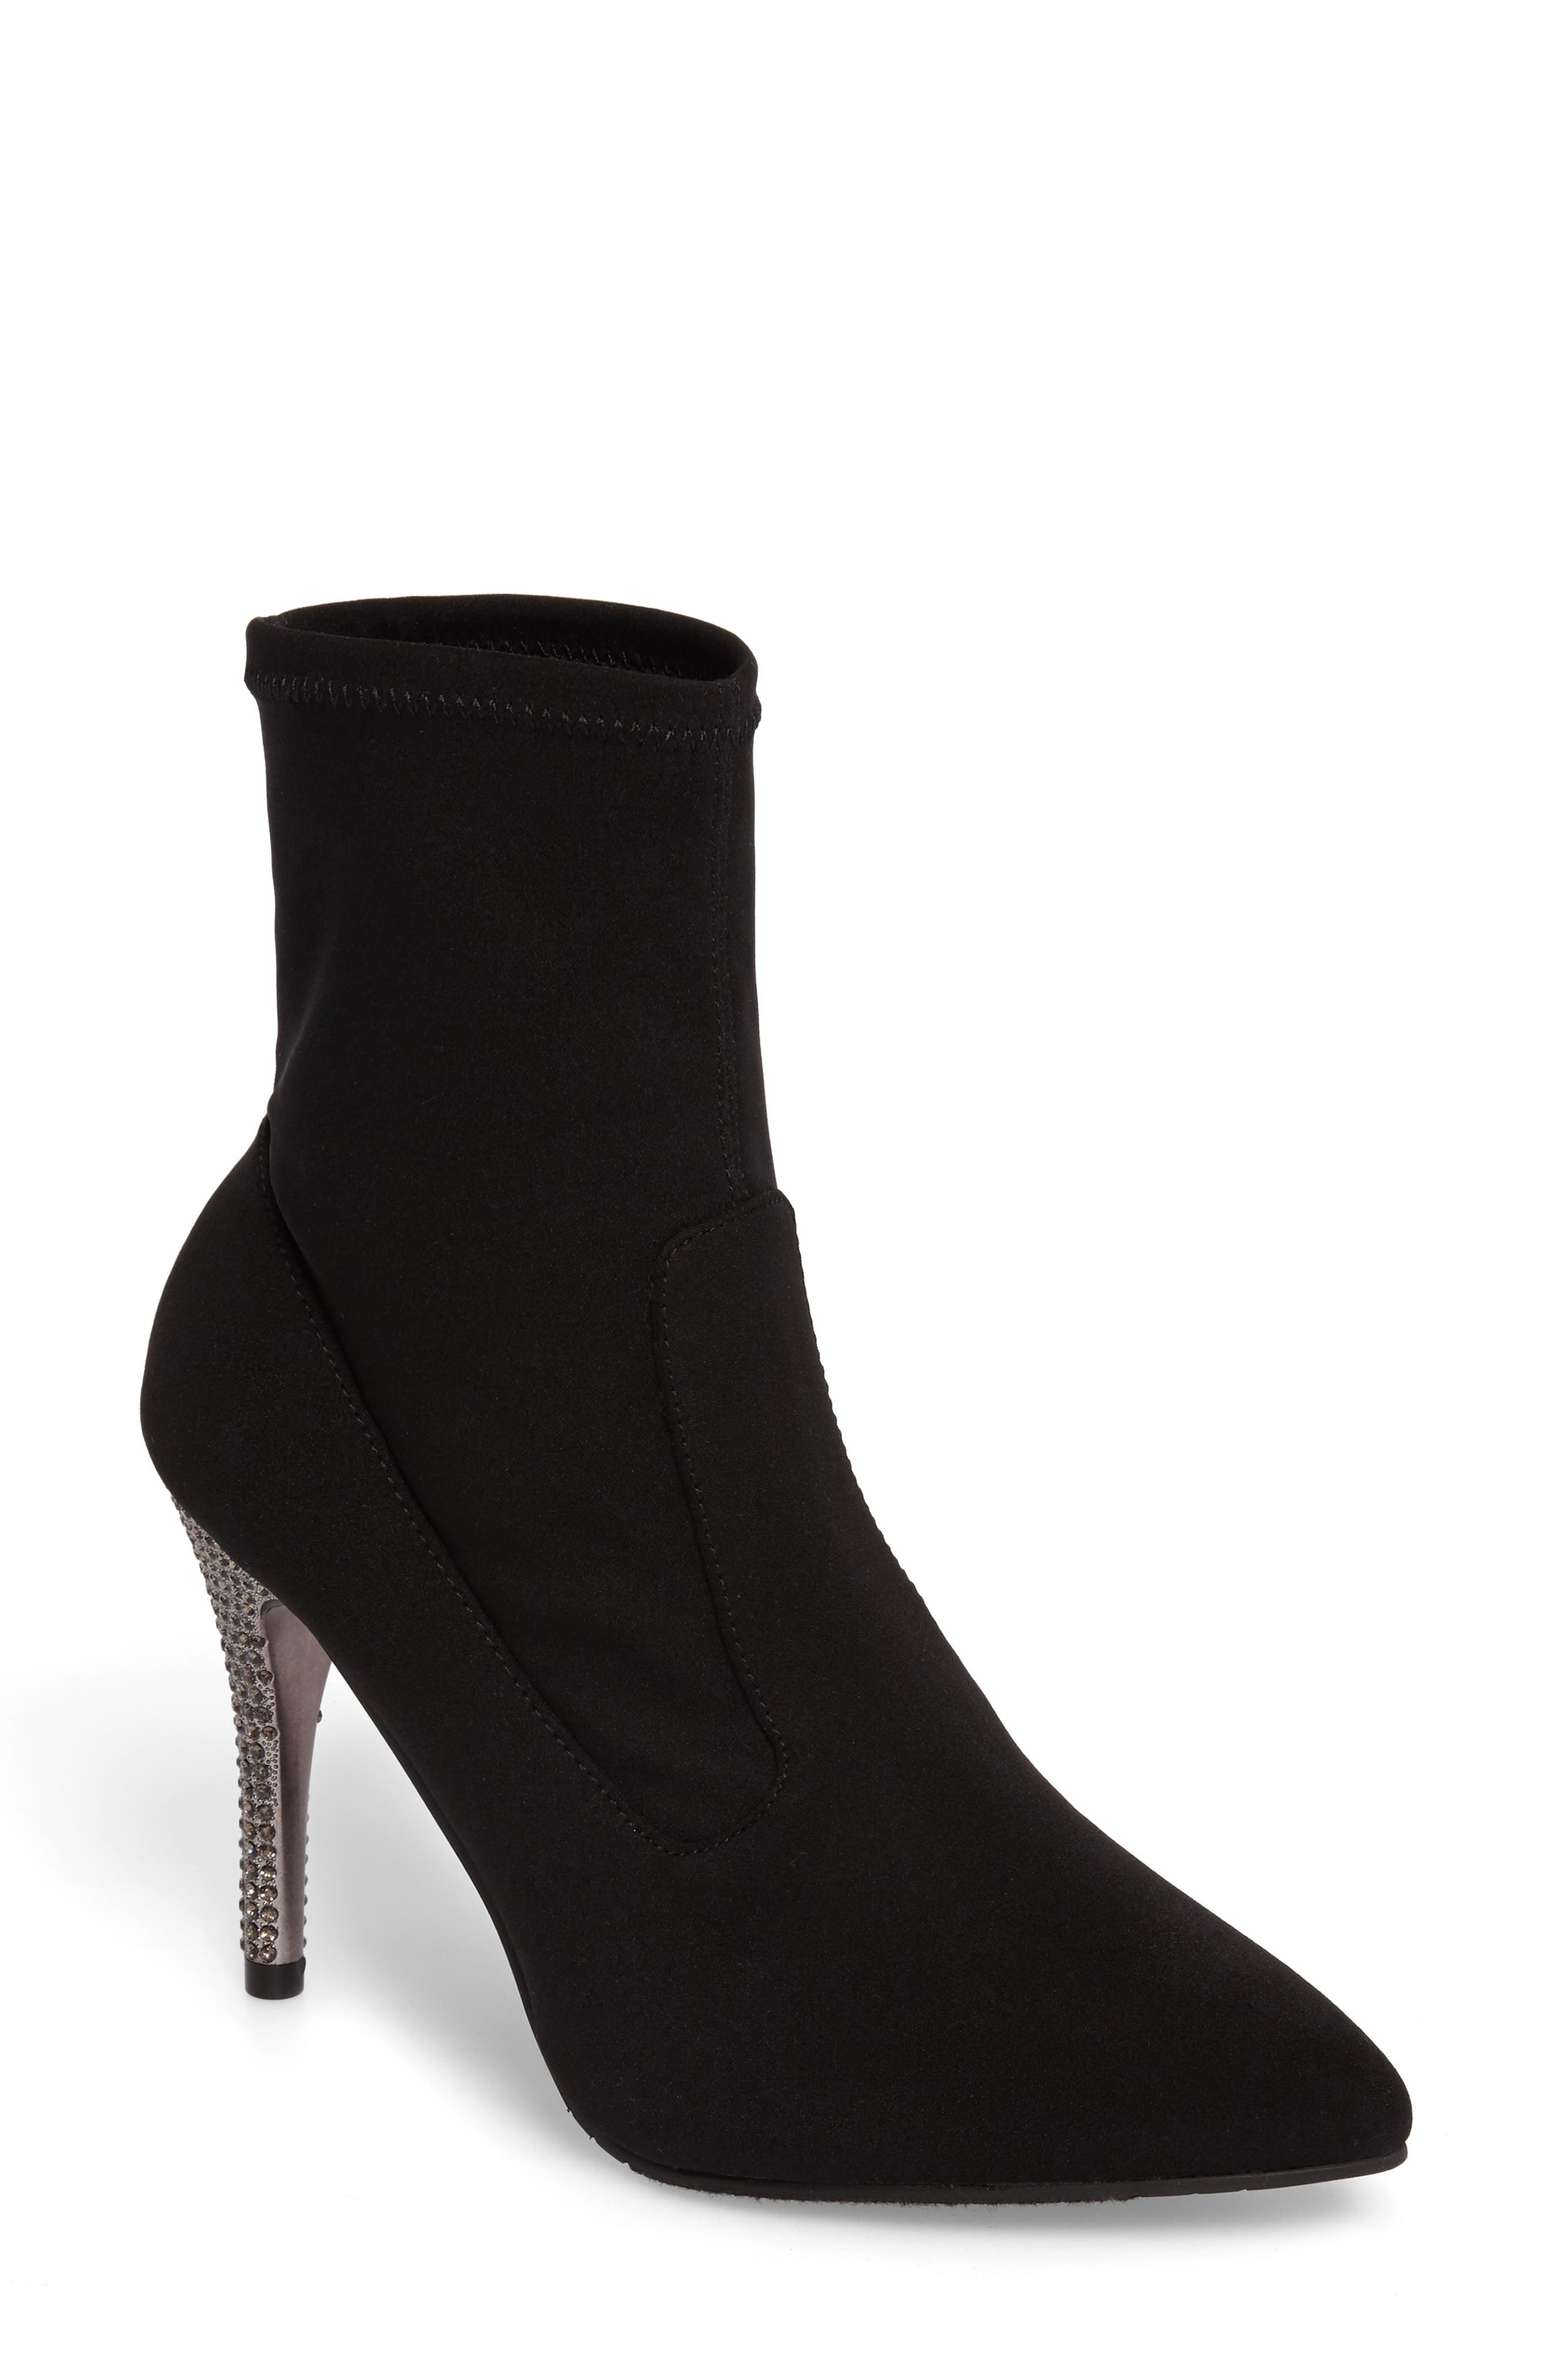 Roxie Bootie,                         Main,                         color, Black Fabric